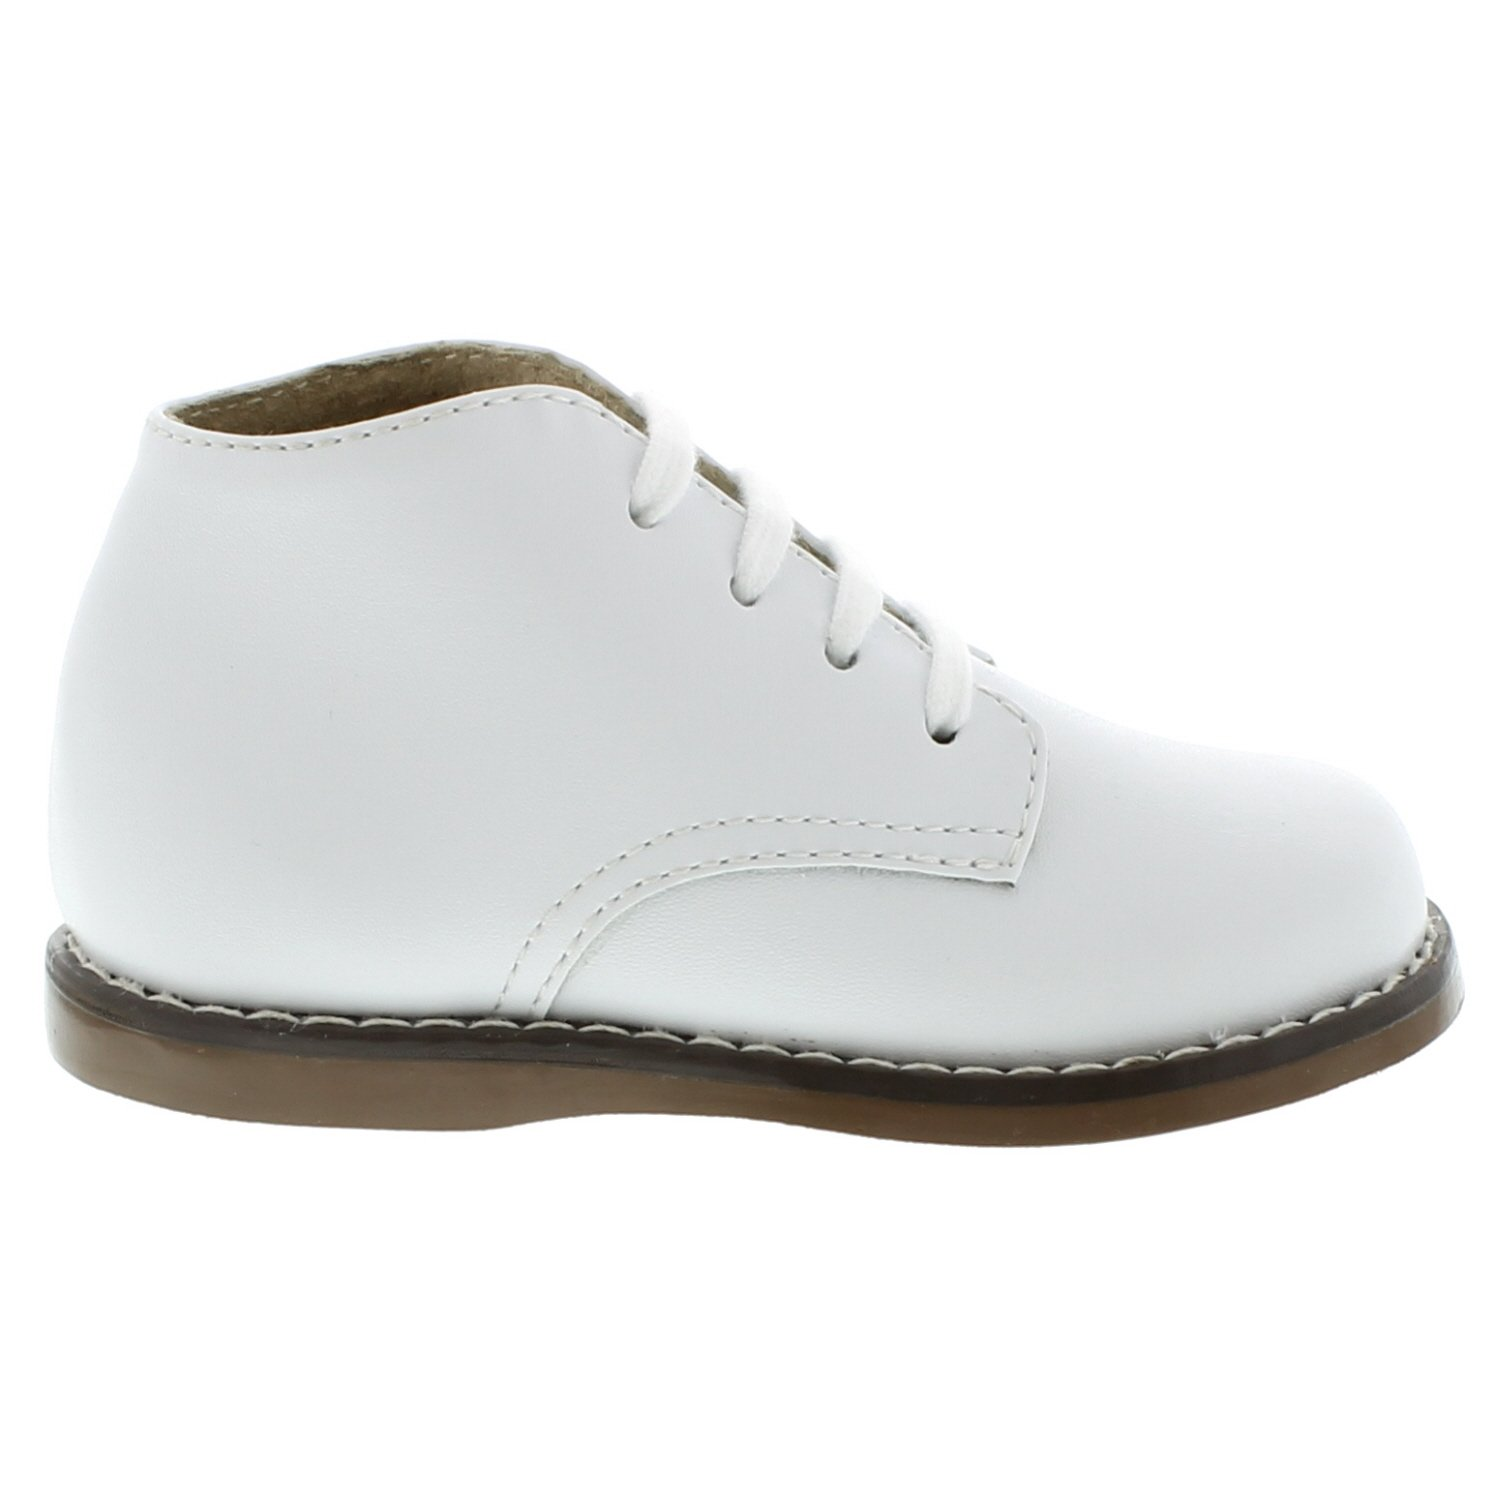 FootMates Unisex Todd 3 (Infant/Toddler) White Oxford 4 Toddler M/W by FOOTMATES (Image #2)